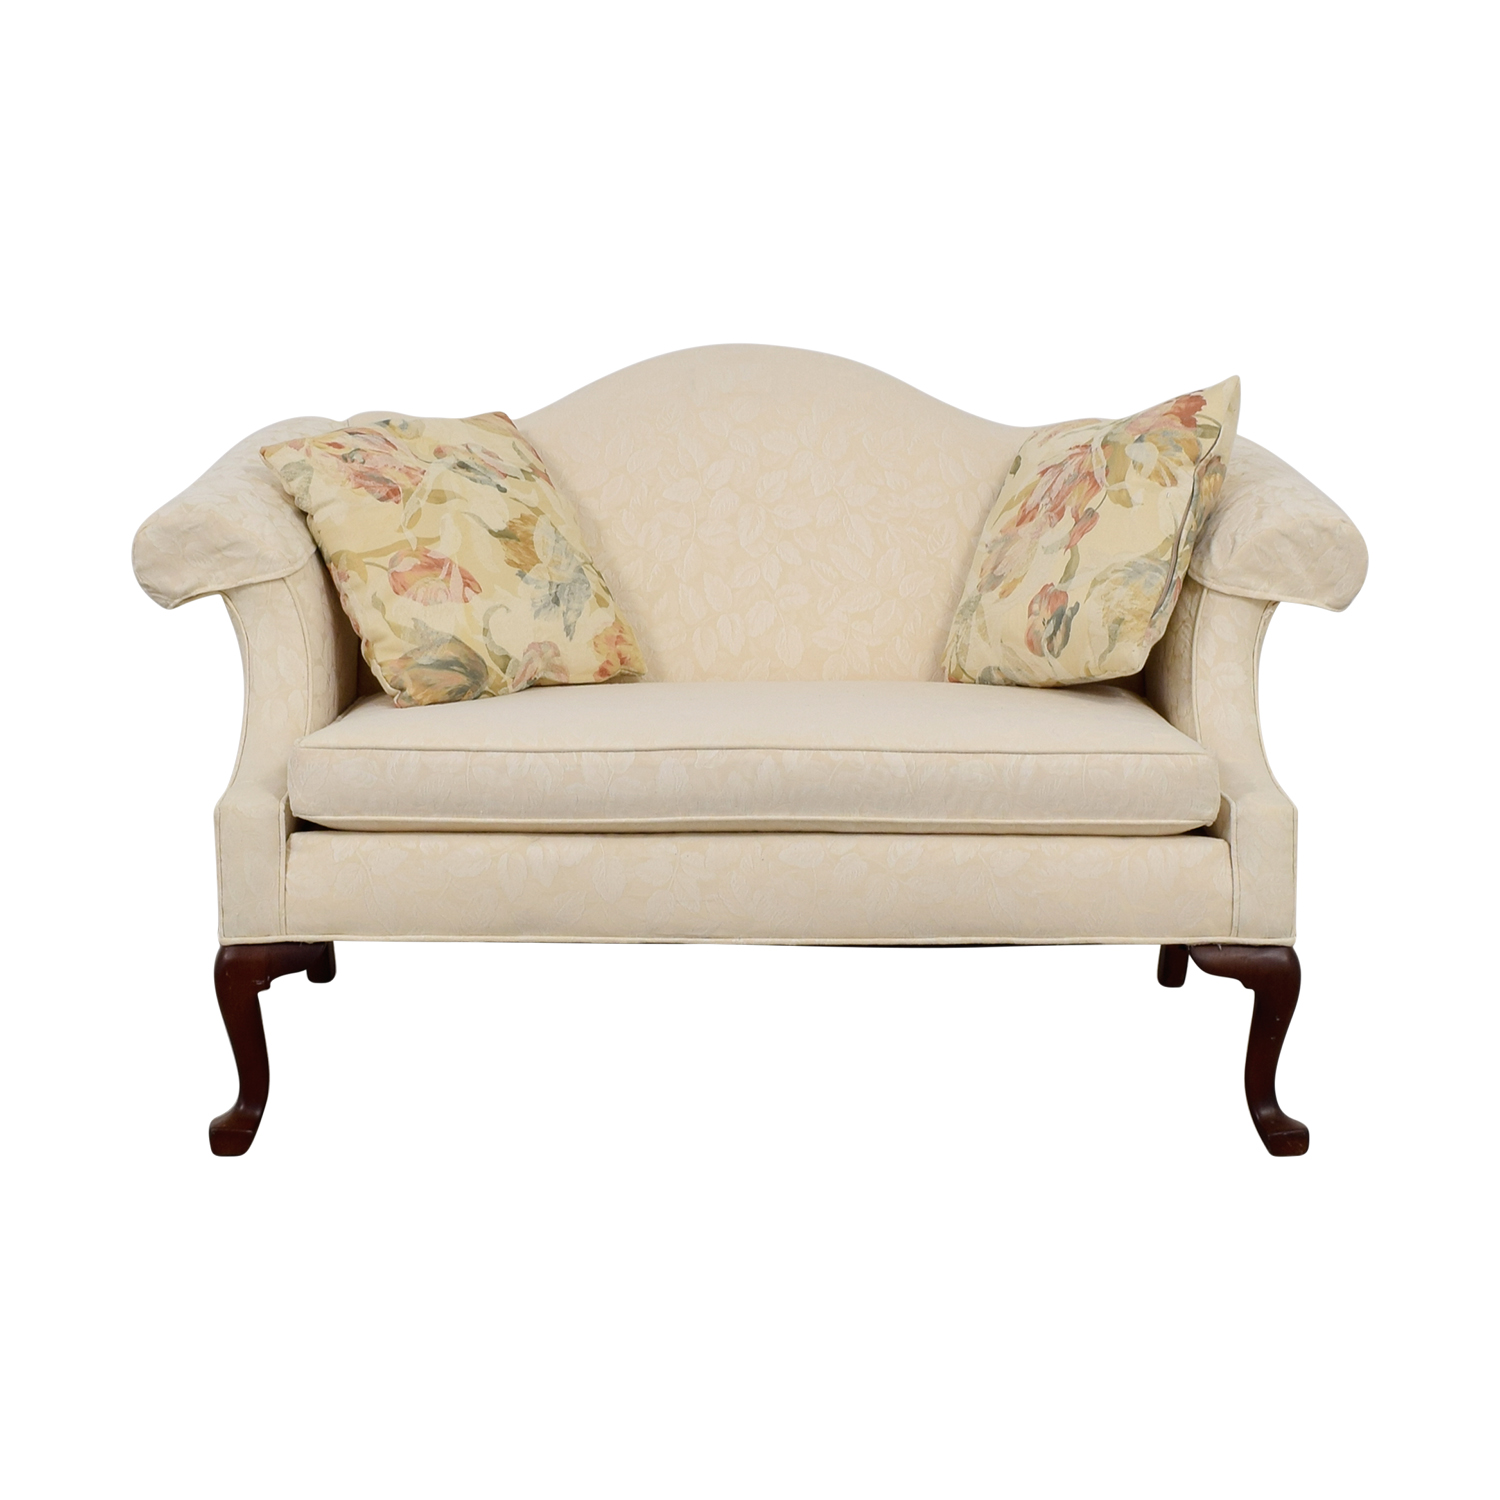 buy Ethan Allen Ethan Allen White Love Seat with Floral Pillows online